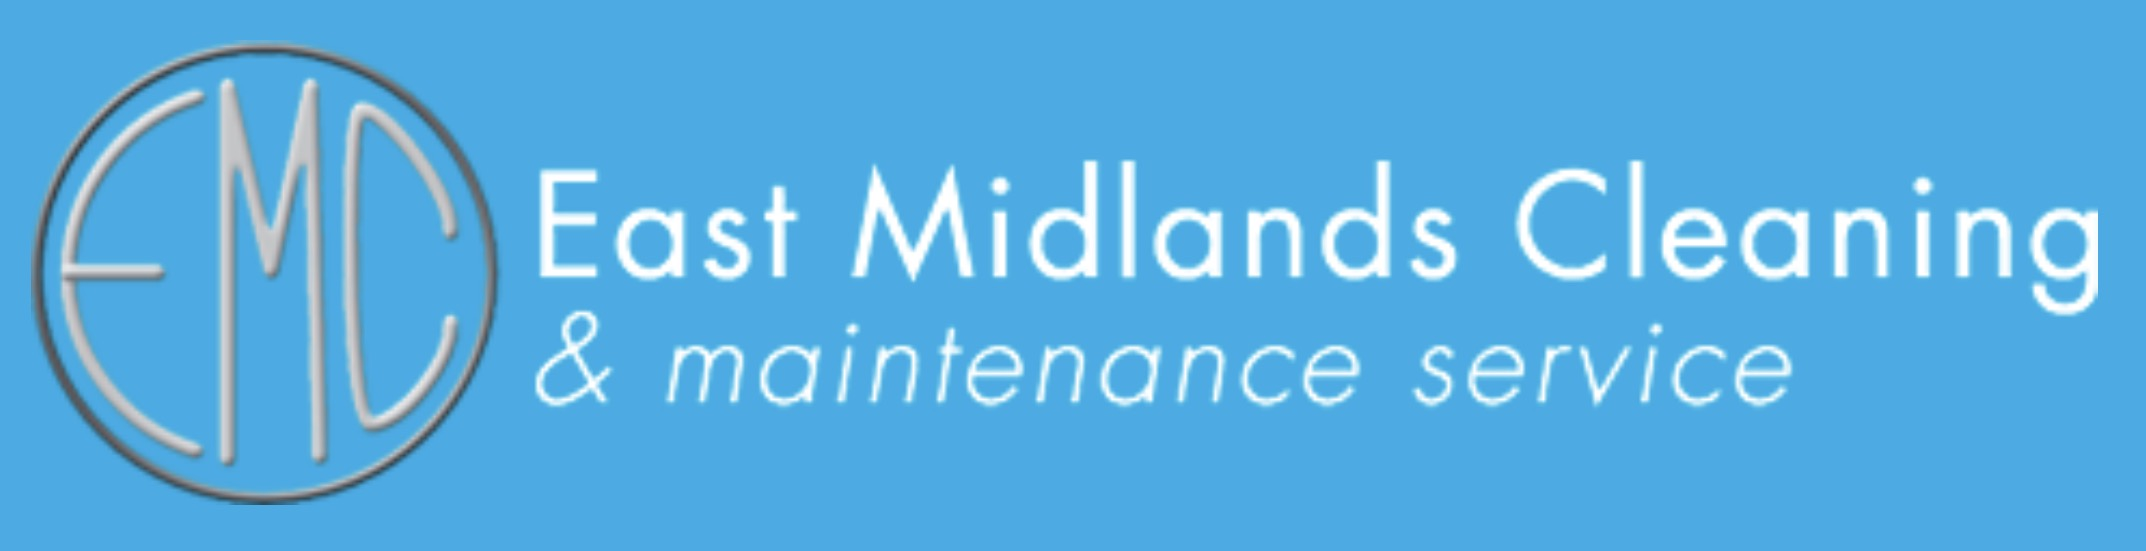 East Midlands Cleaning and Maintenance services ltd